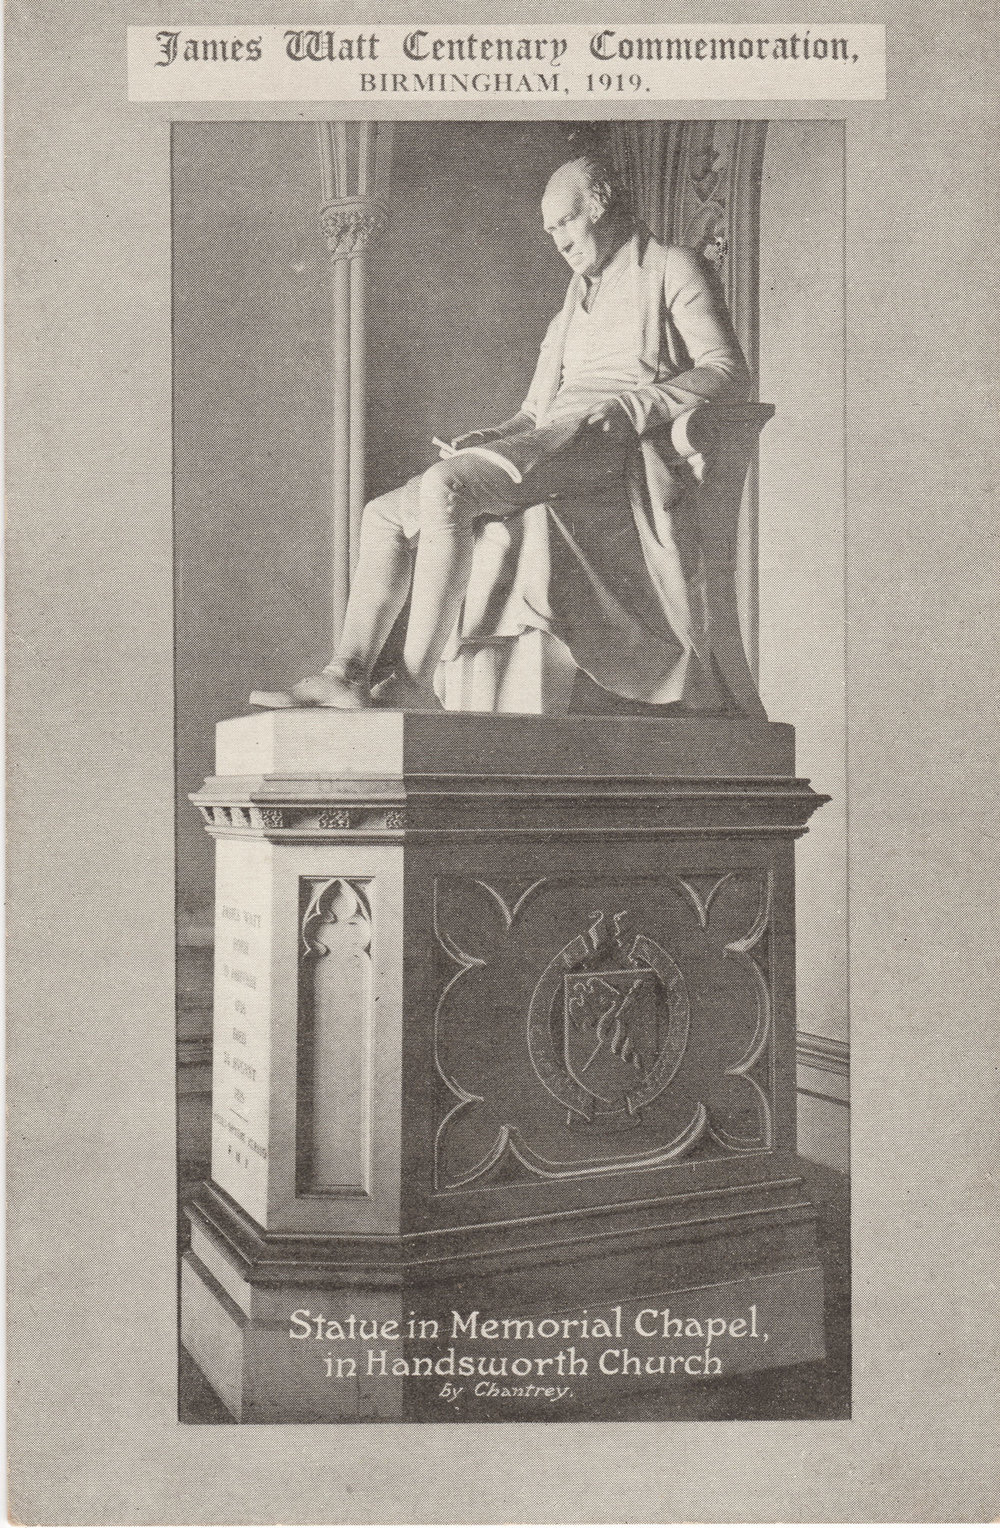 Statue in Memorial Chapel in Handsworth Church